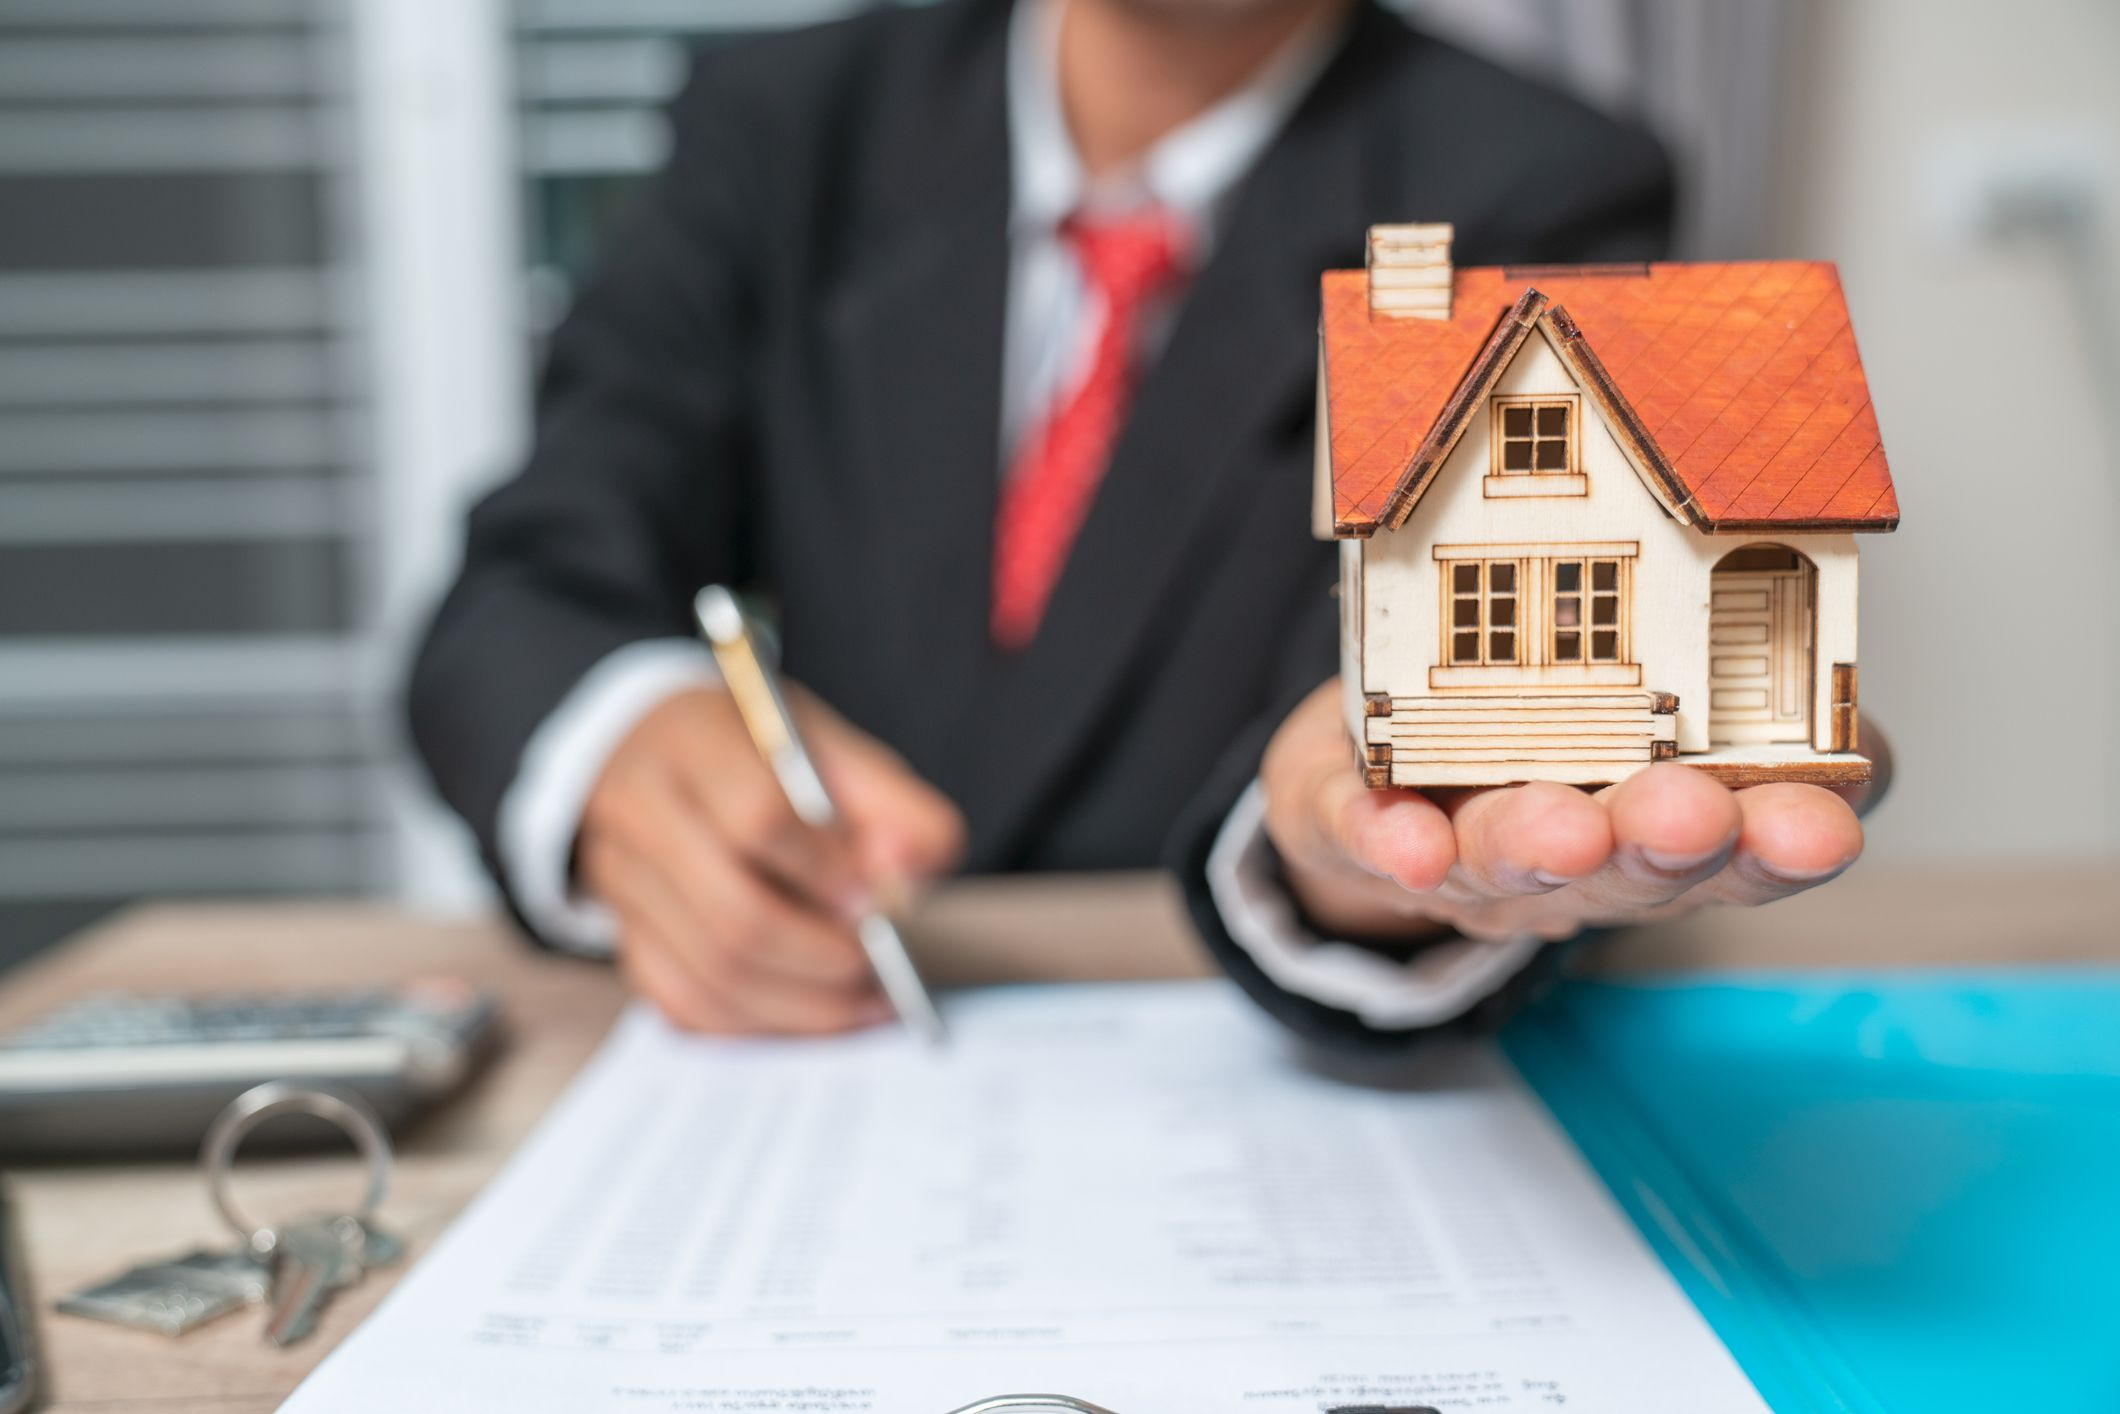 business with customer after contract signature of buying house 957745706 85fbb1739bcc4a27b1e5d1e80dd9c1c9